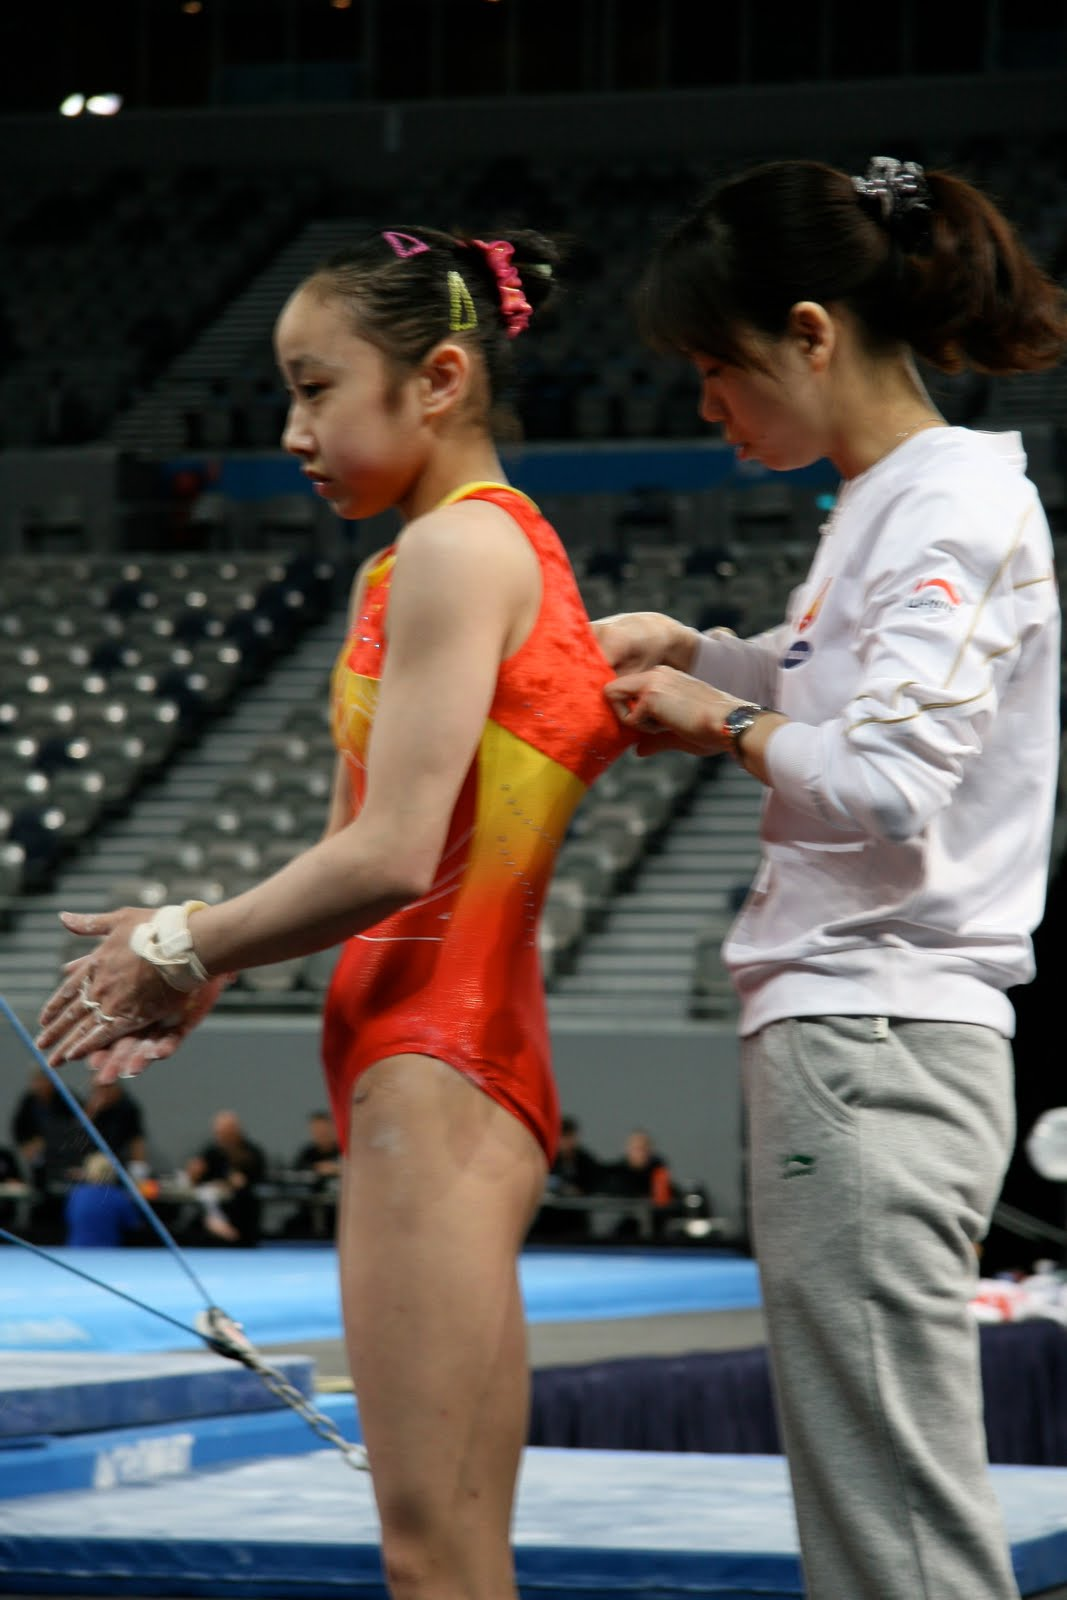 Wardrobe Malfunctions At The Olympics http://ajilbab.com/wardrobe/wardrobe-malfunction-olympic-gymnastics.htm